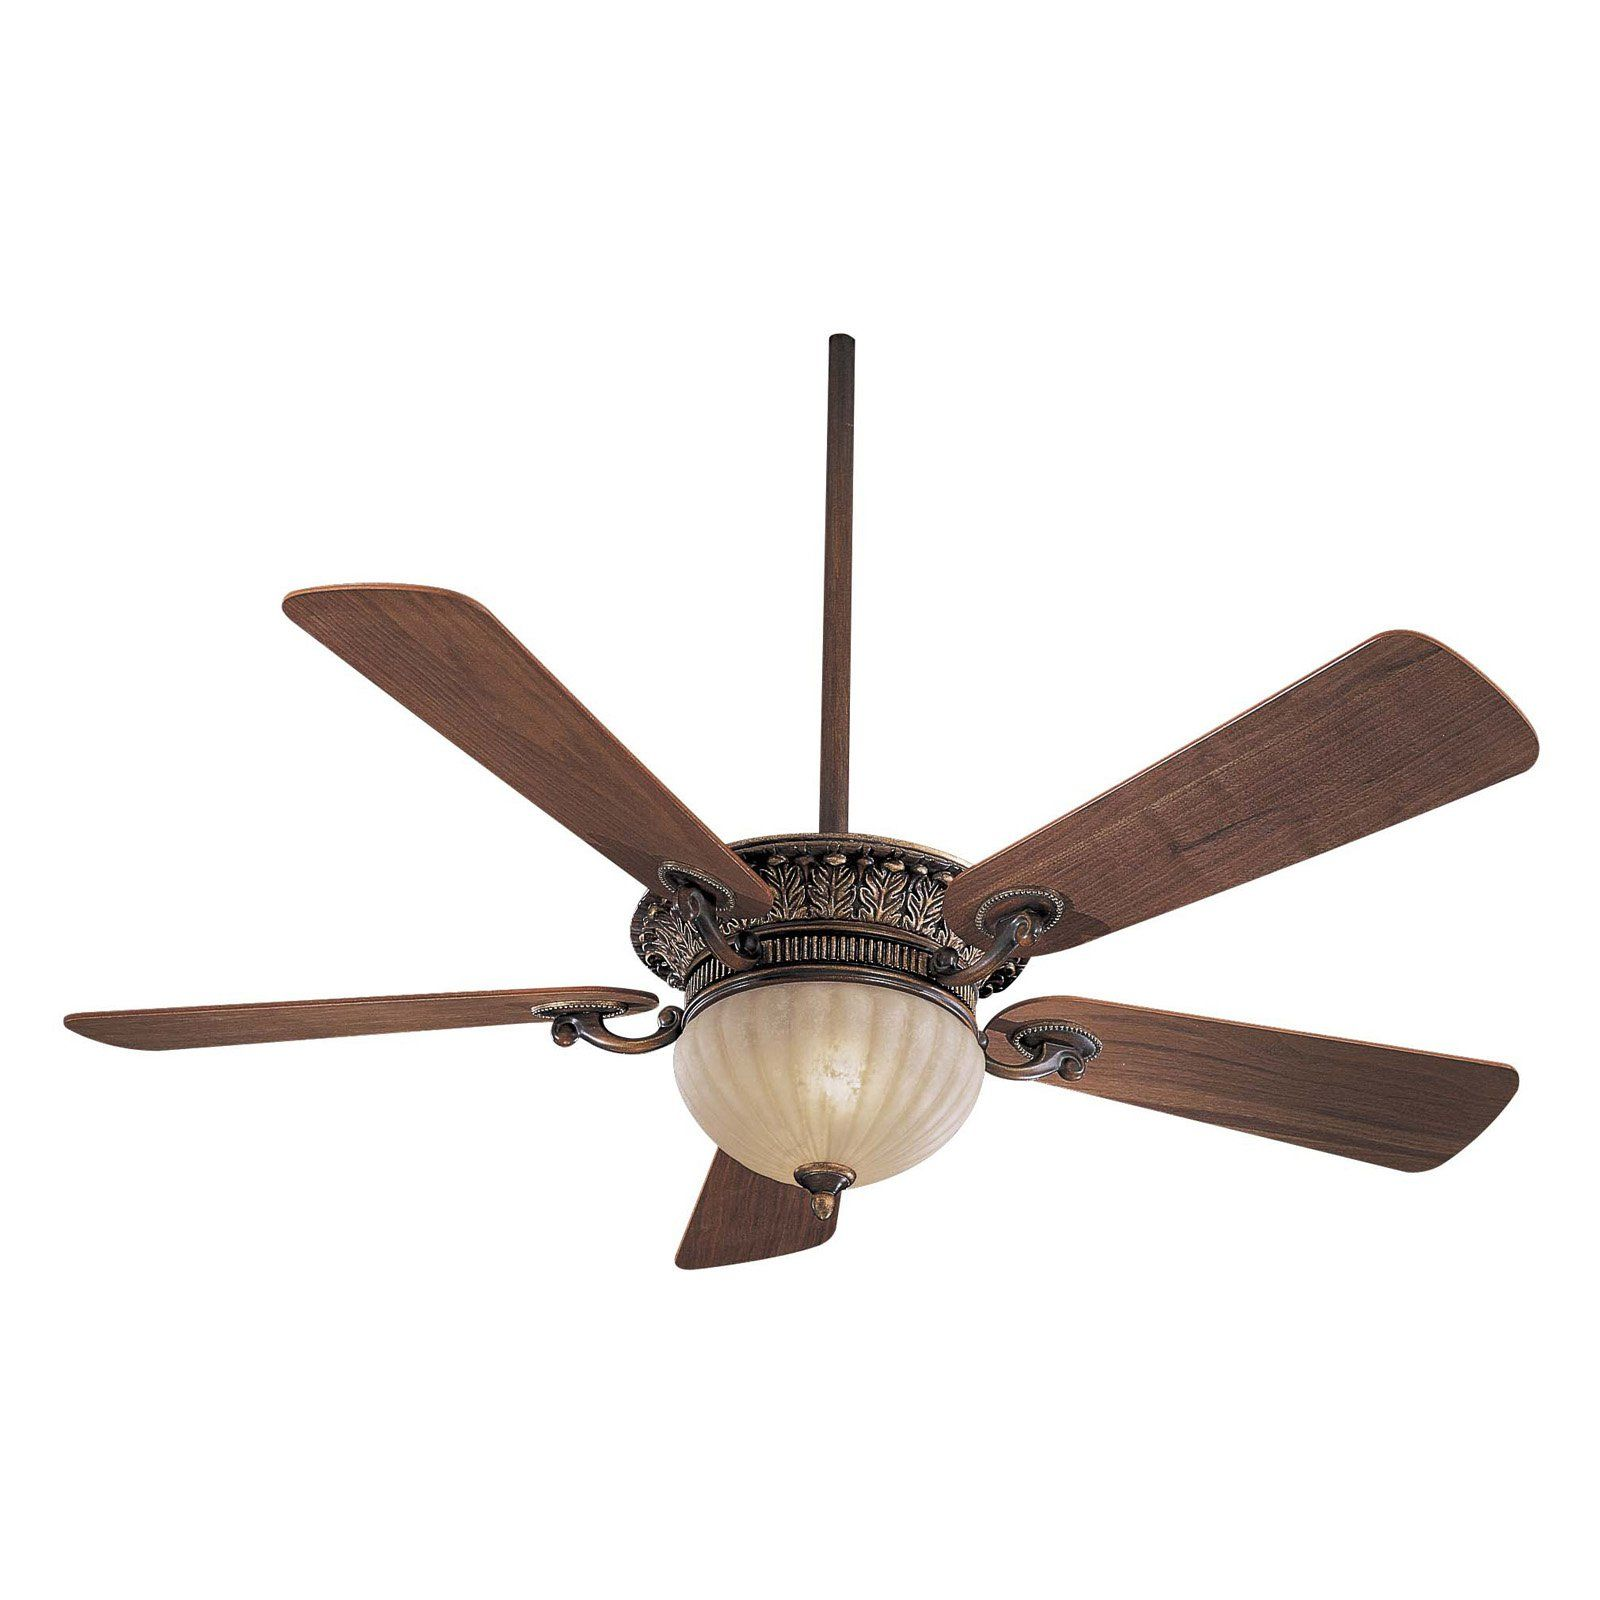 Minka Aire F702BCW Volterra 52 in. Indoor Ceiling Fan